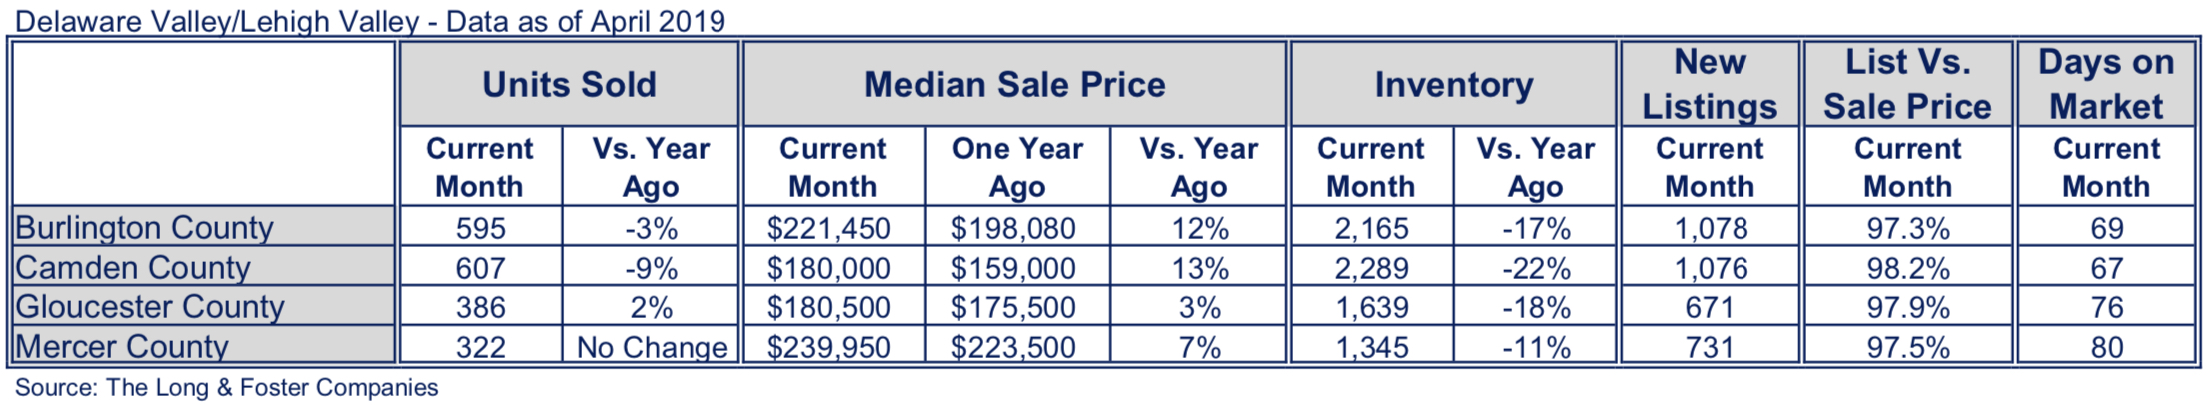 NJ Suburbs Market Minute Chart April 2019